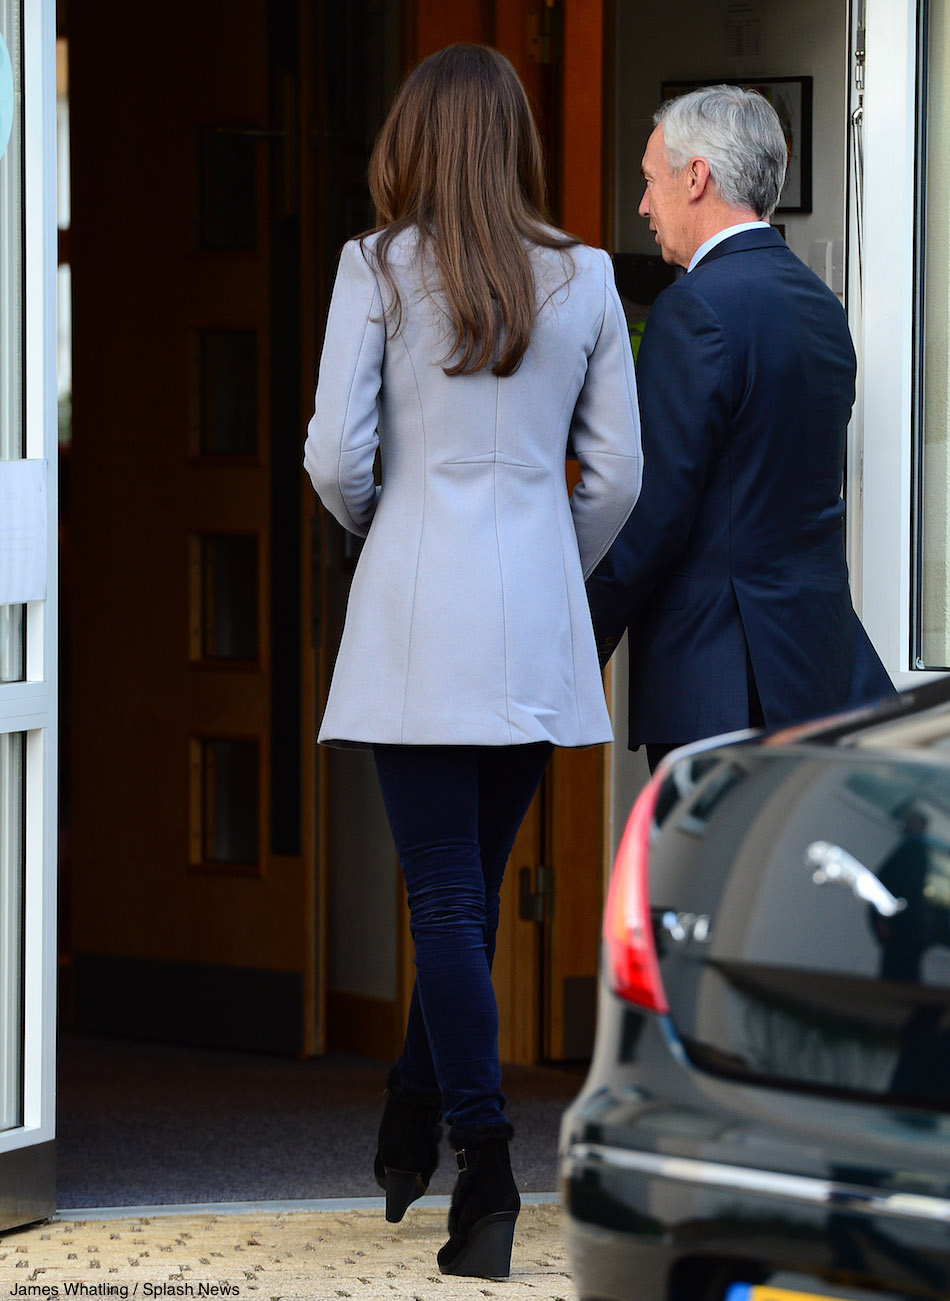 Kate Middleton wearing the Aquatalia boots to the shooting star house hospice